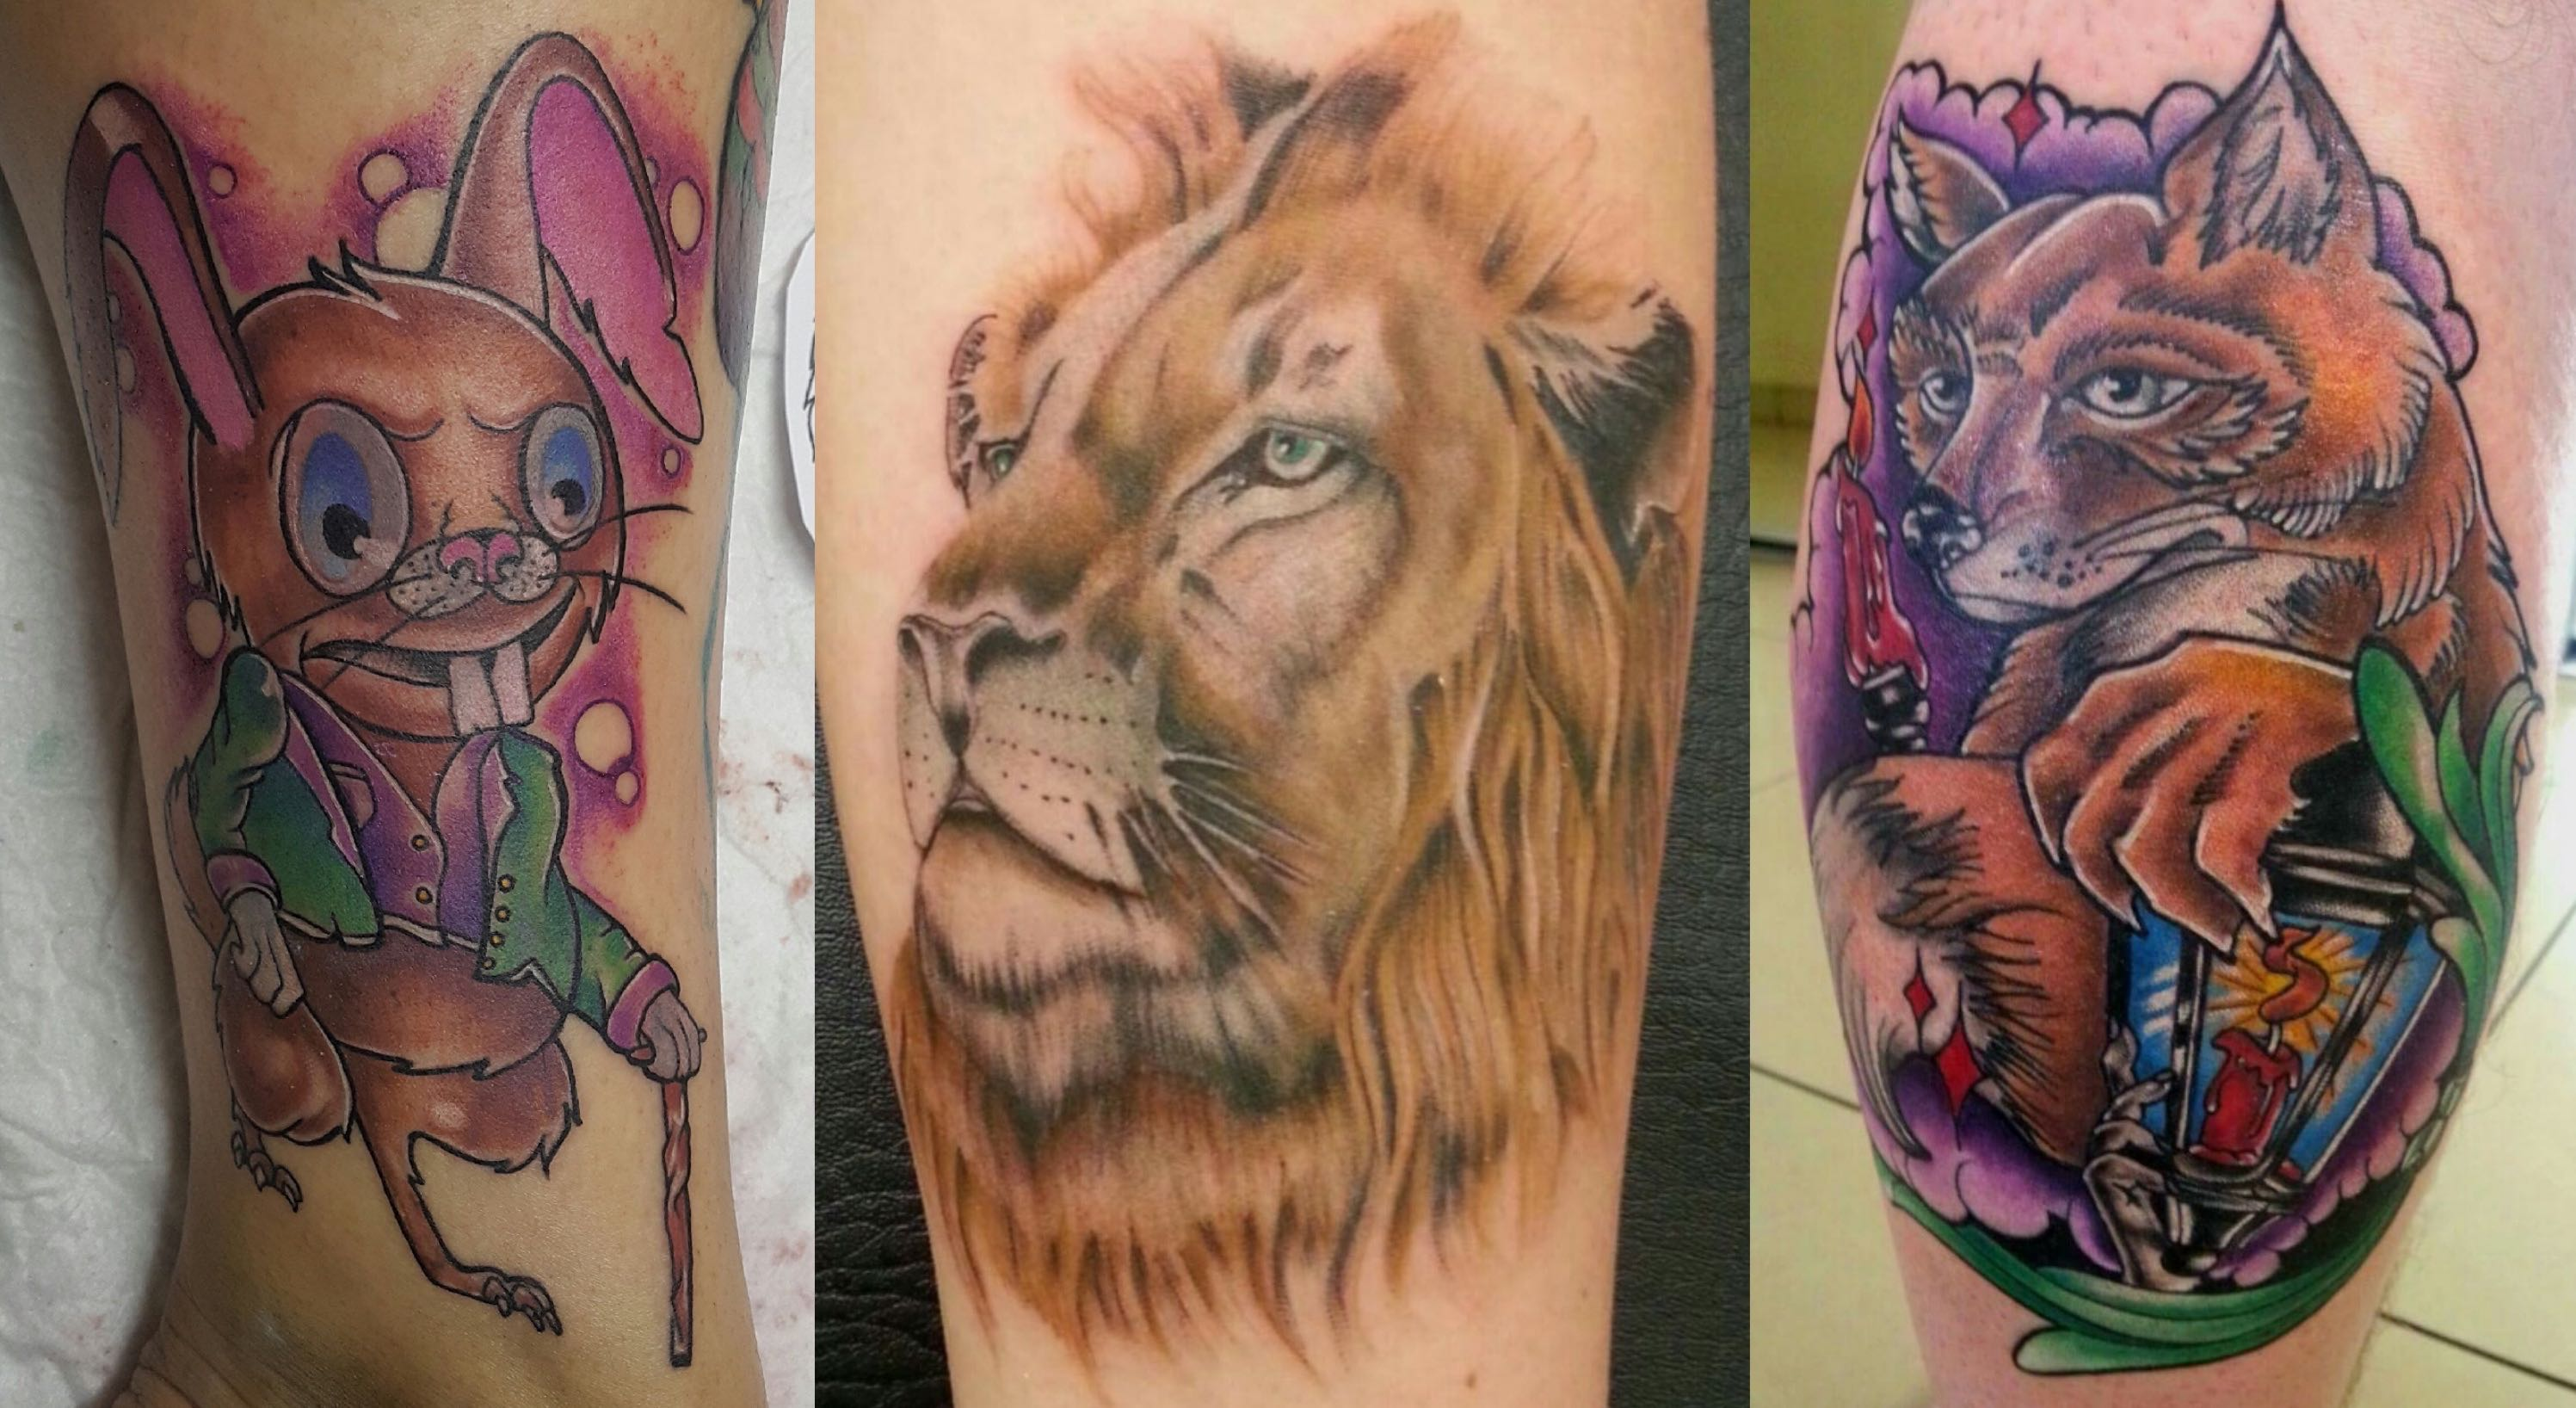 Rudi Rautenbach of Inkaholic Tattoos talked to us about the tattoo industry